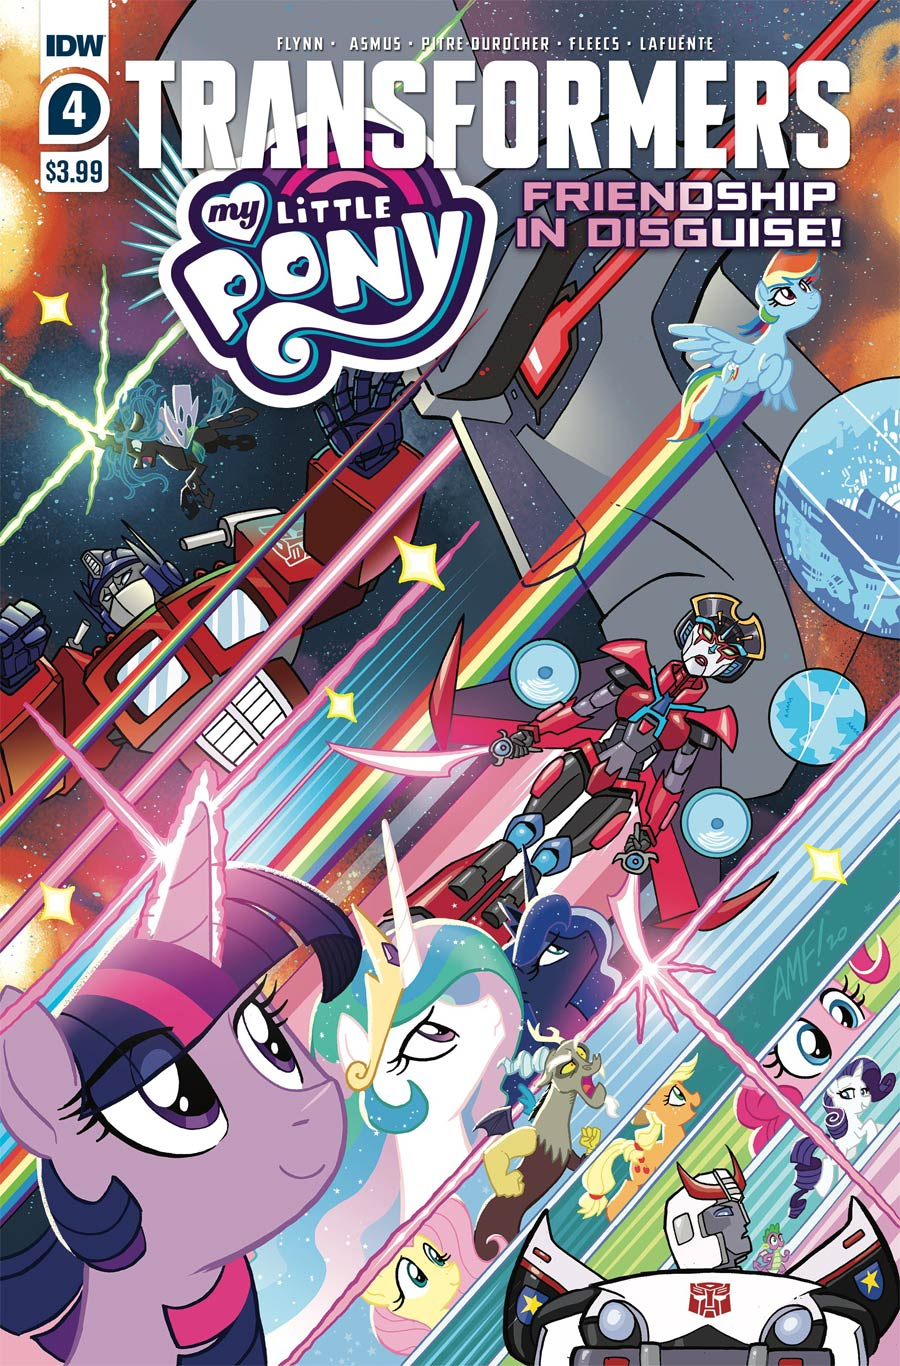 My Little Pony Transformers Friendship In Disguise #4 Cover A Regular Tony Fleecs Cover